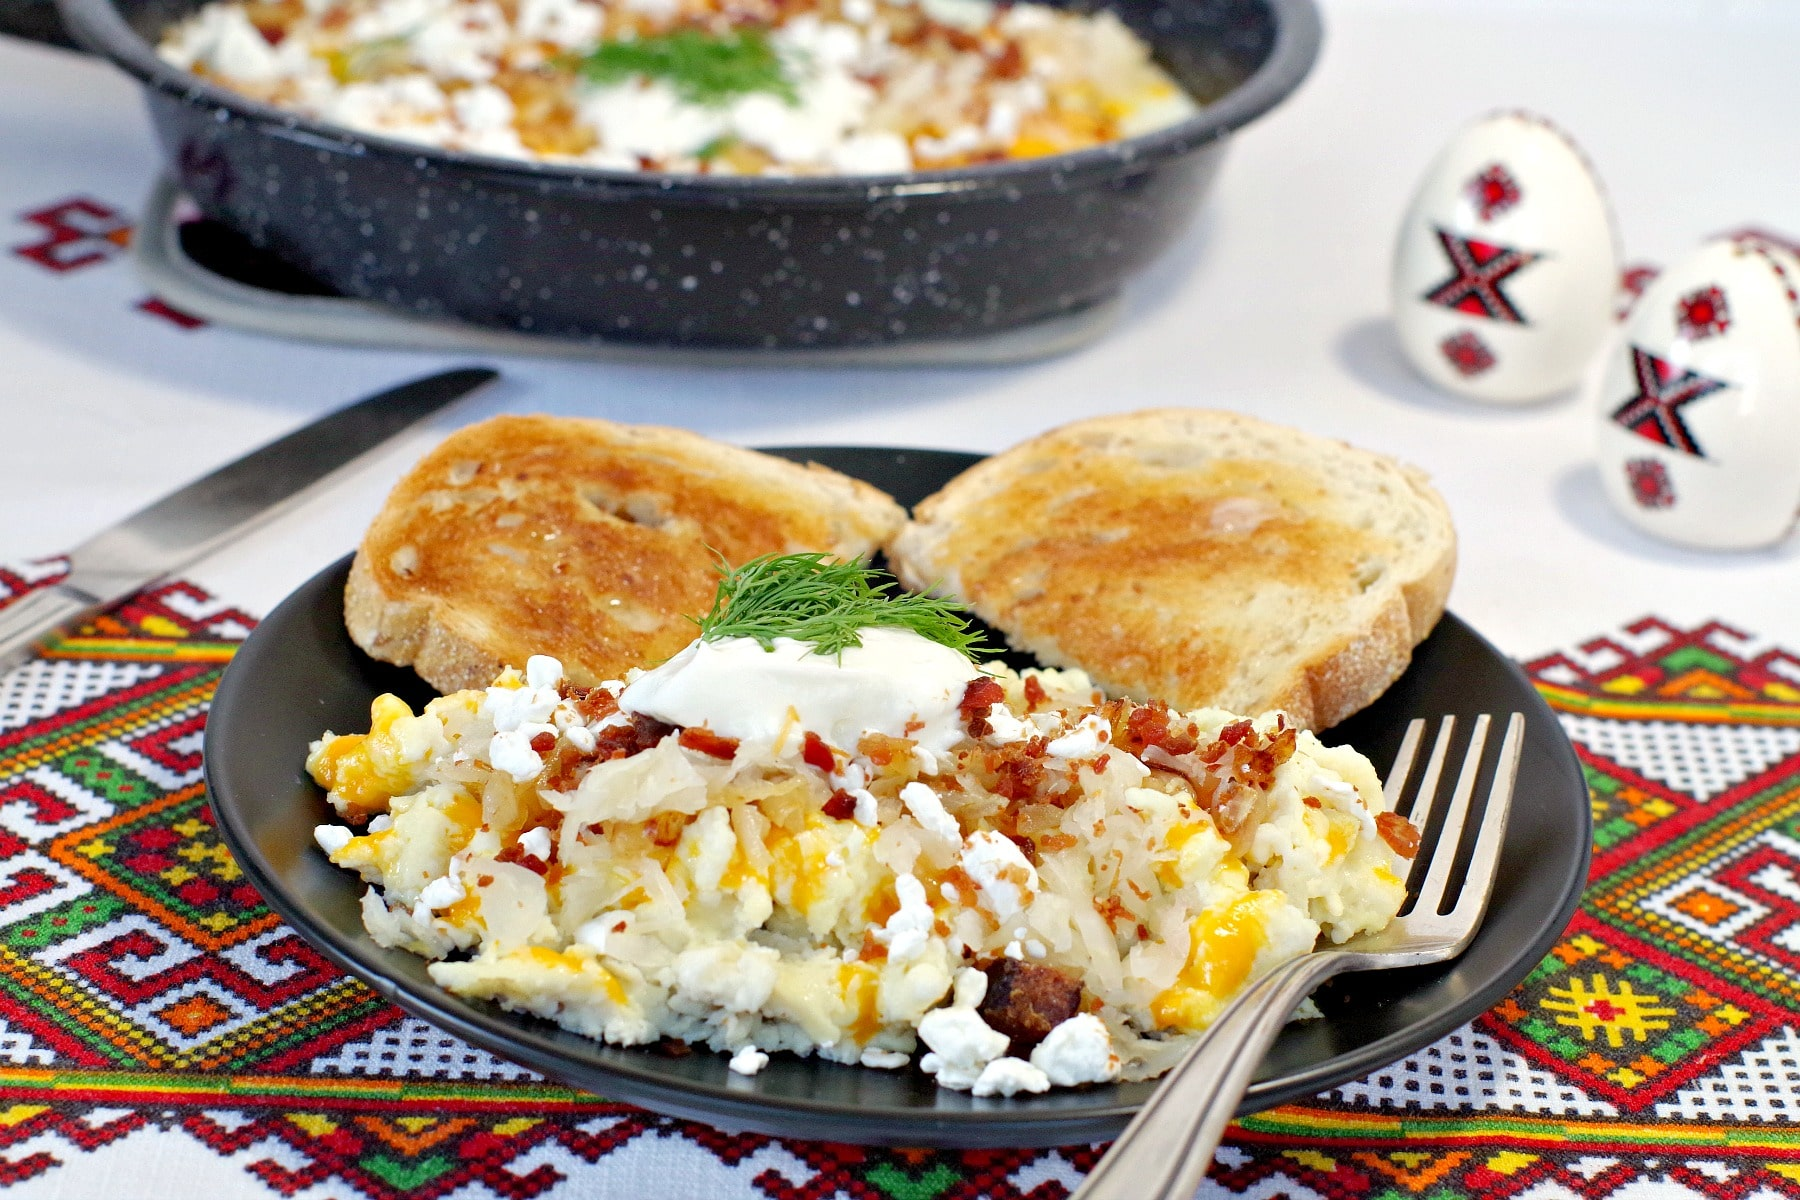 Scrambled Ukrainian style eggs on a black plate in foreground with pan of fried Ukrainian style eggs in background